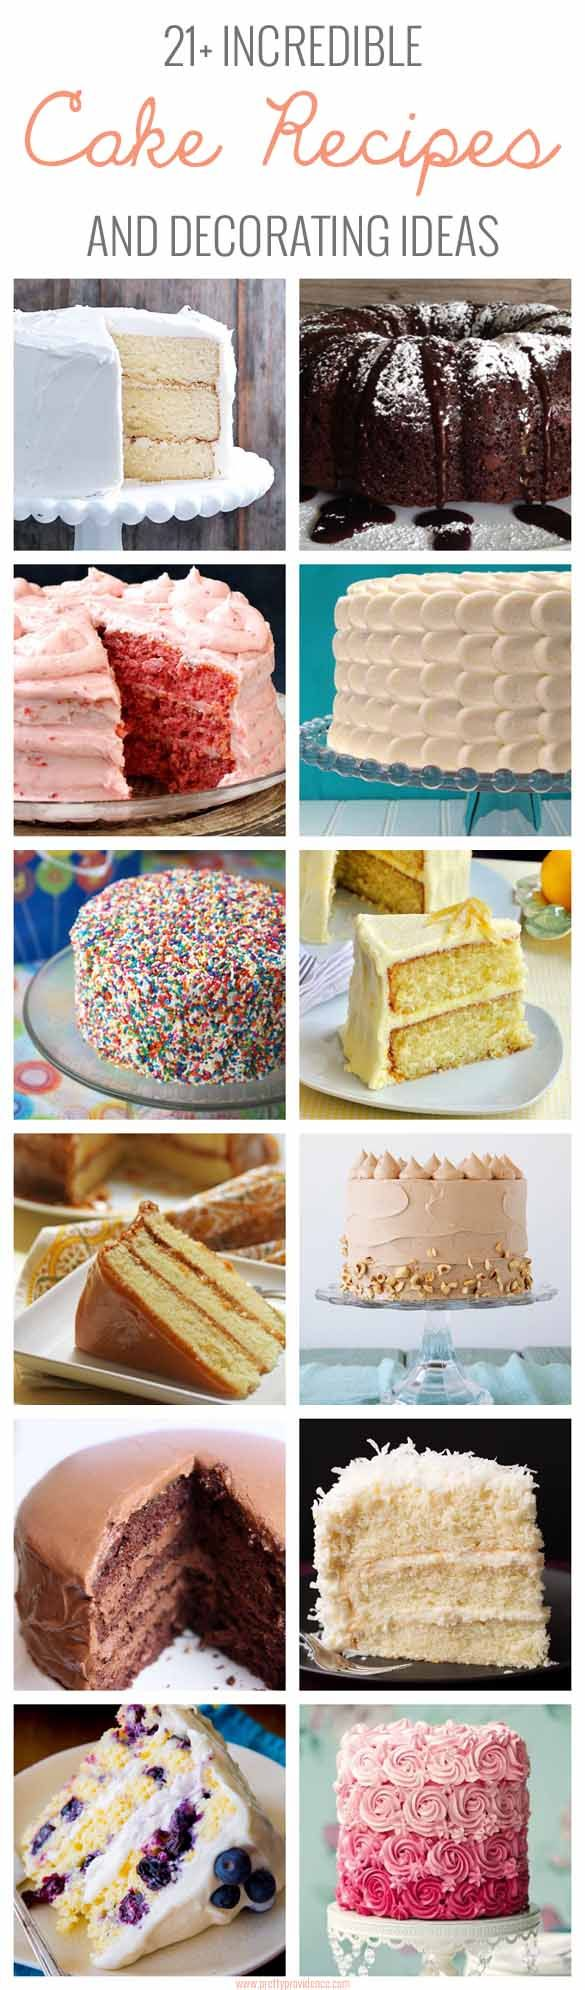 21+ Incredible cake recipes and easy decorating ideas! Seriously every single one of these is beautiful and delicious! Definitely something for all of your loved ones!